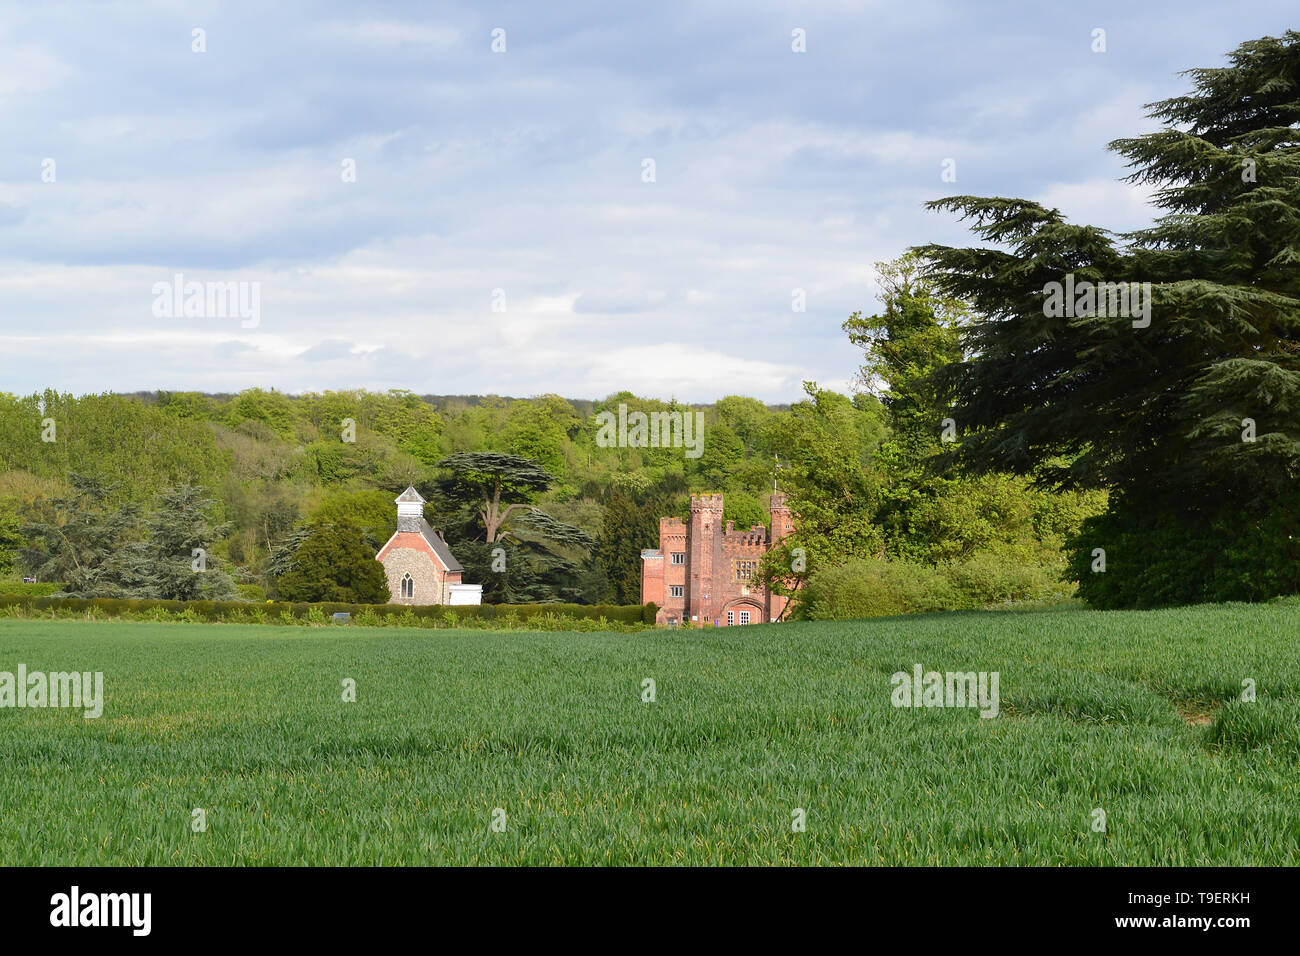 Hawthorn and cedar of Lebanon tree in Darent Valley by medieval Lullingstone Castle, Kent, a favourite of Henry VIII, on a bright but cloudy May day - Stock Image